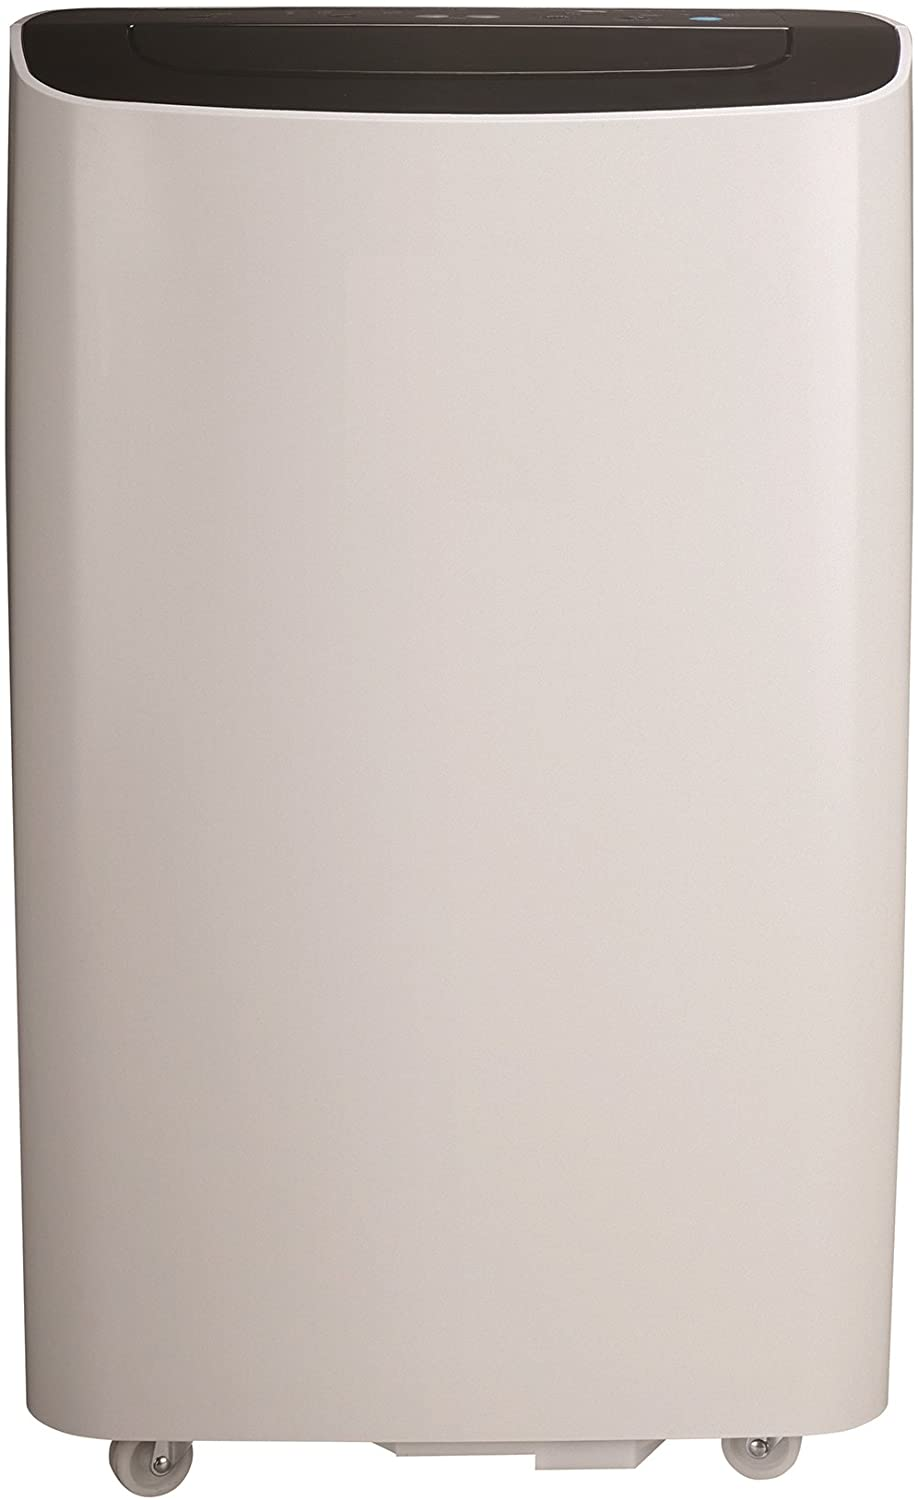 Wind AP8018 Portable Air Conditioner with Remote Control for Rooms up to 150-Sq. Ft.